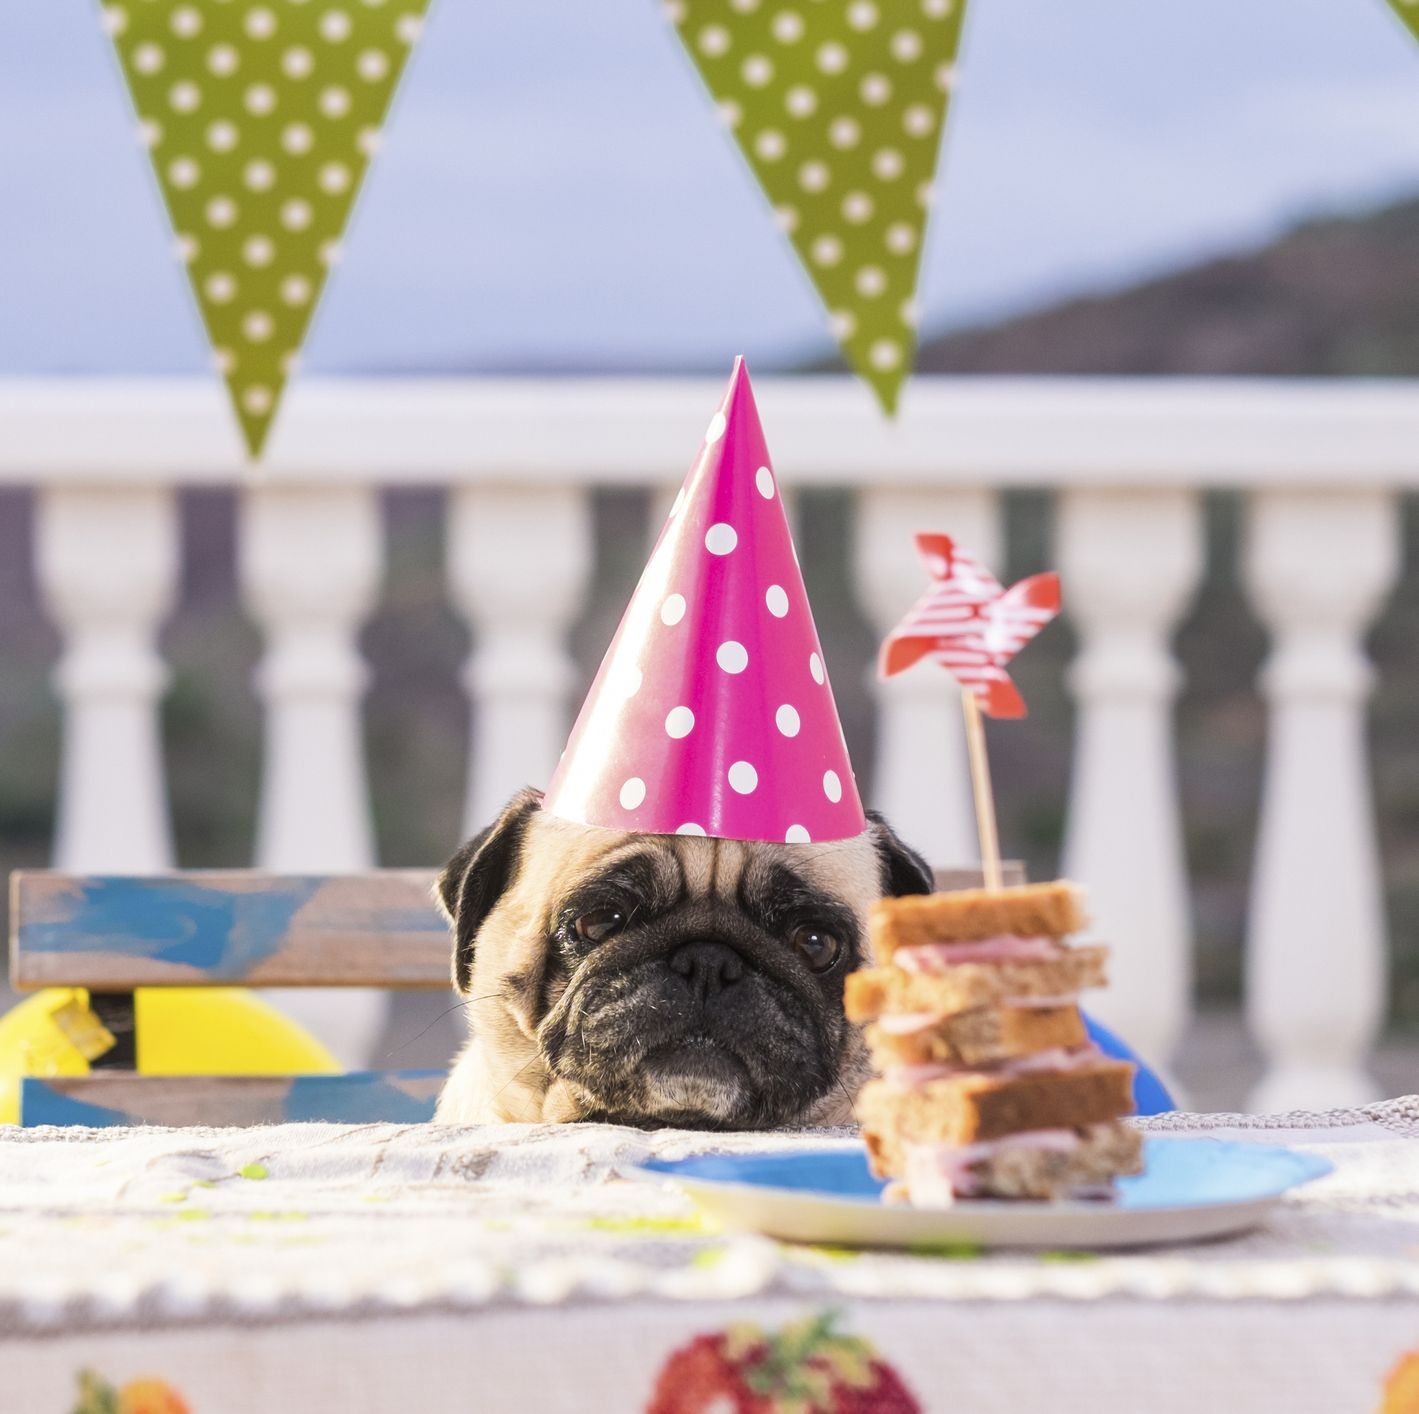 How to Throw Your Dog a Party (That's Really For Yourself, Let's Face It)